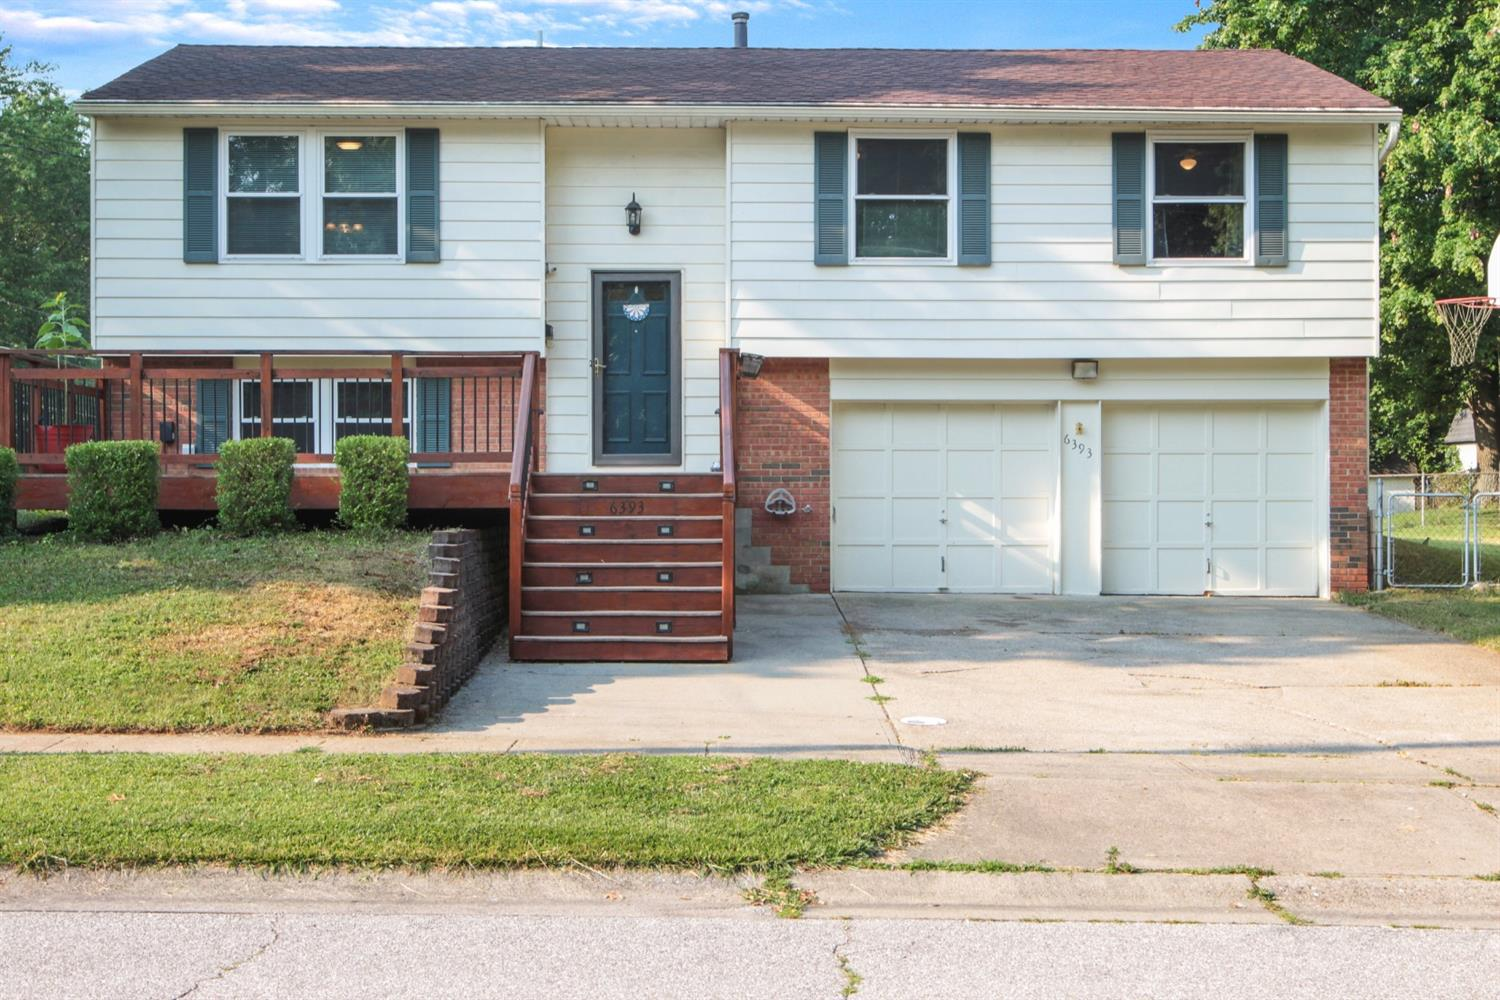 6393 Beaconwood Drive, Anderson Twp, Ohio 45230, 3 Bedrooms Bedrooms, 7 Rooms Rooms,2 BathroomsBathrooms,Single Family Residence,For Sale,Beaconwood,1706870